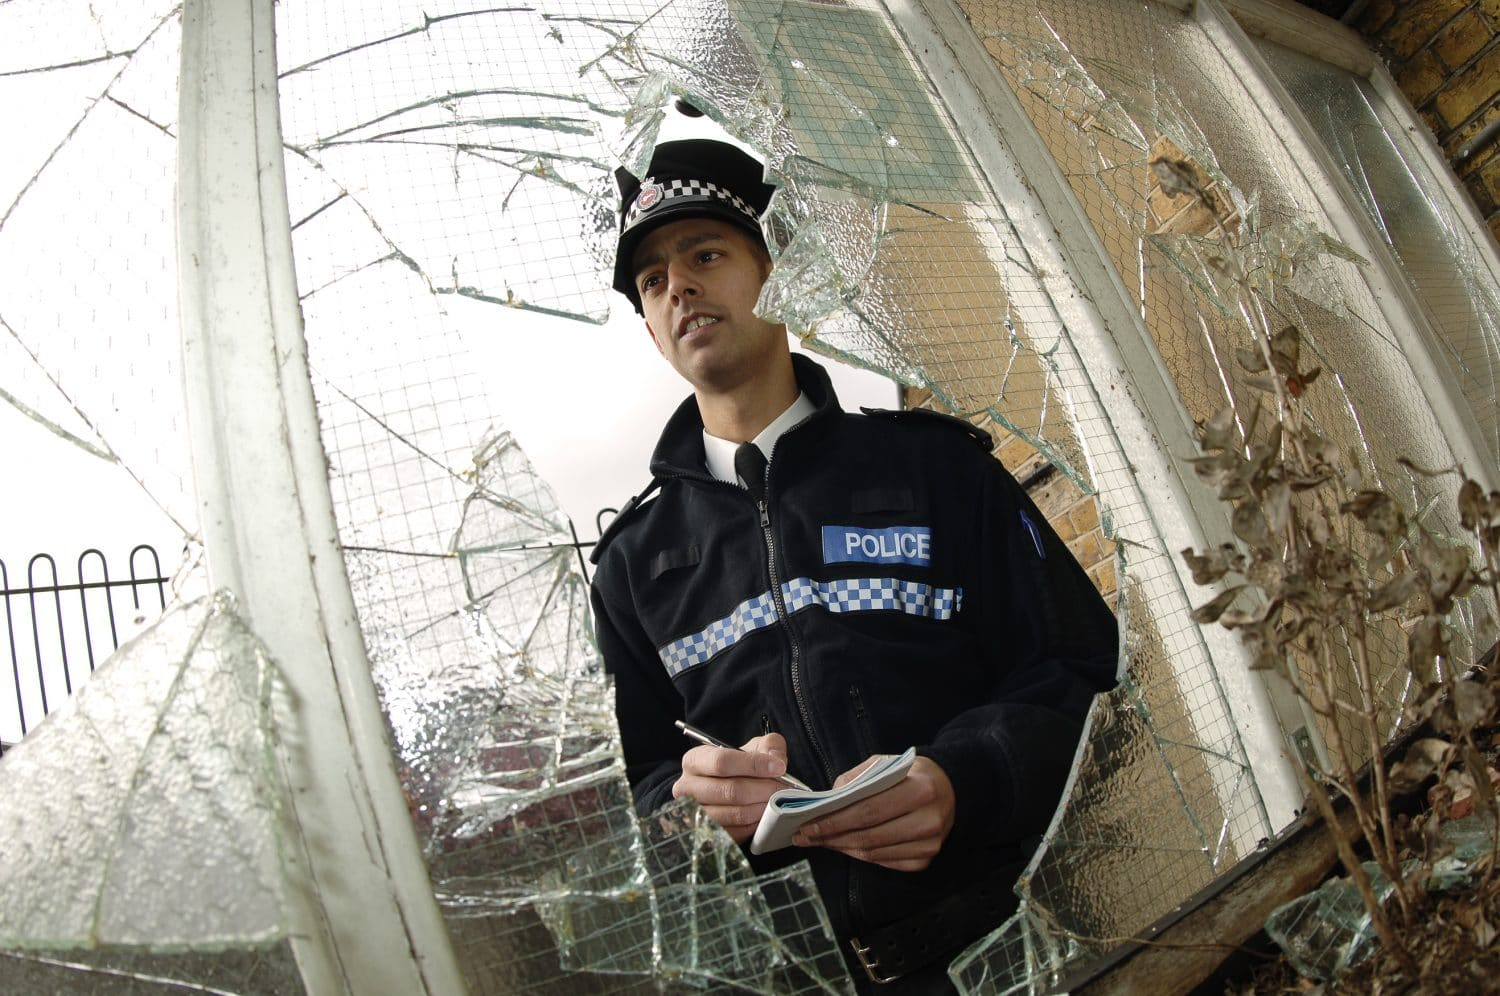 Officer looking at a broken window